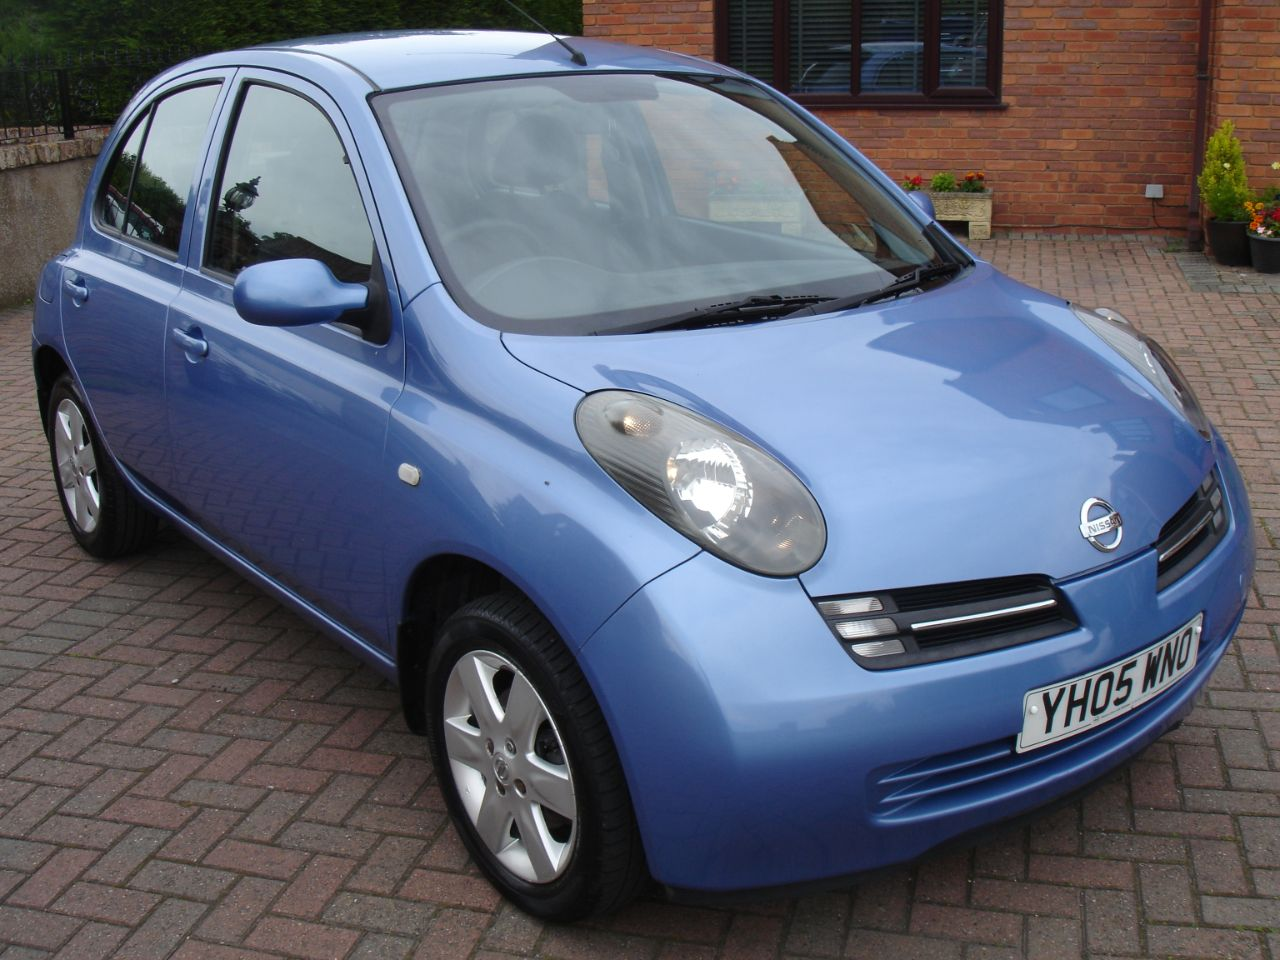 Nissan Micra 1.2 Urbis 16v 5dr Hatchback Petrol Metallic Blue at Level Pitch Selby